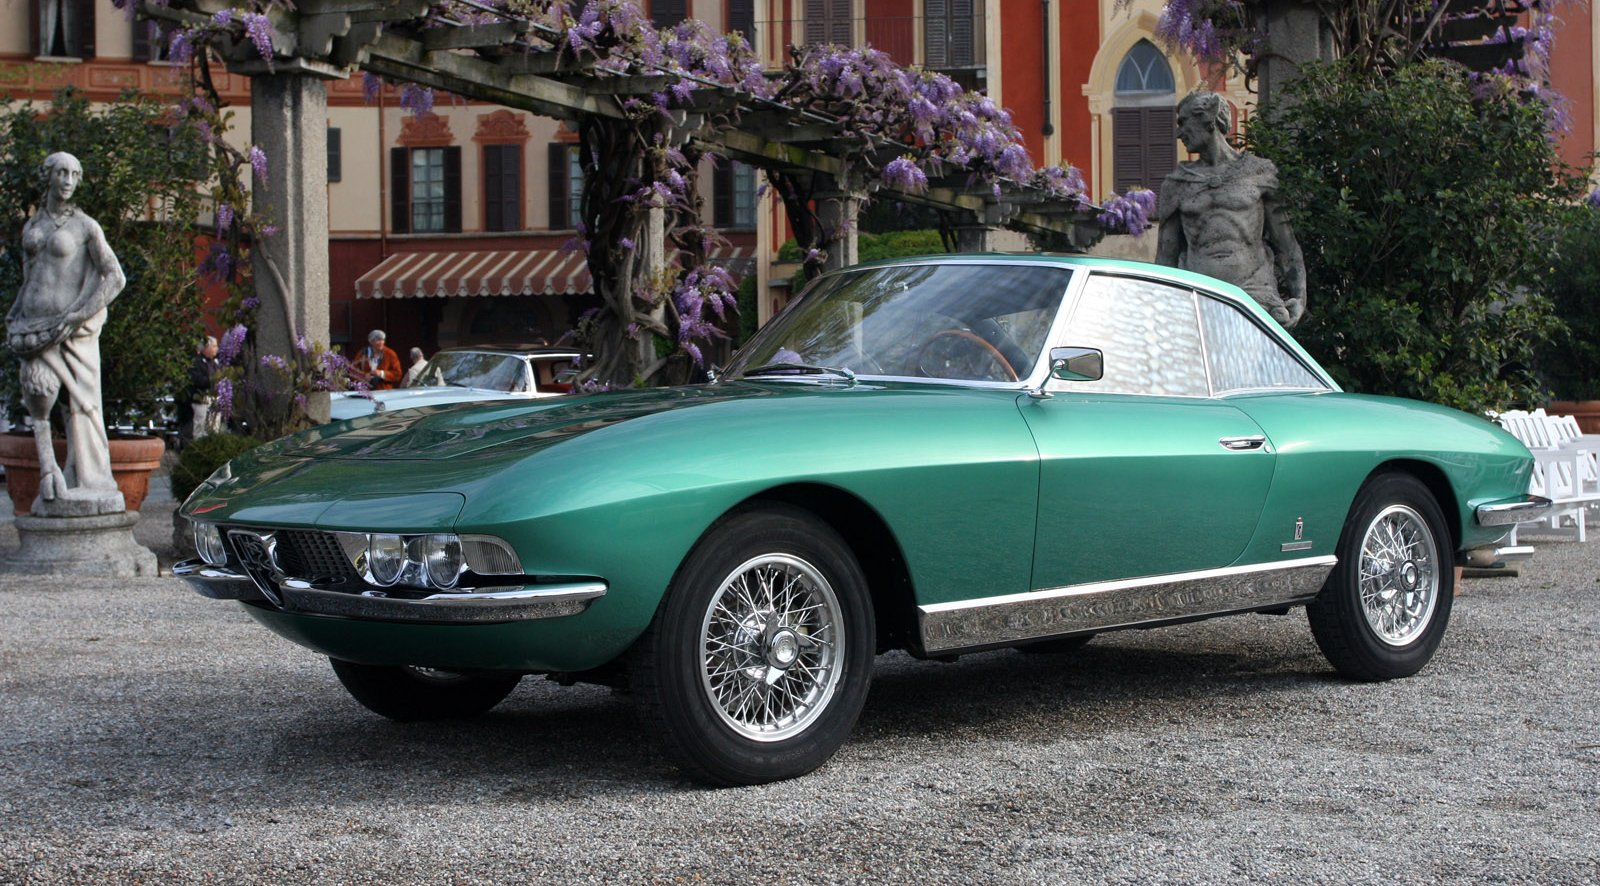 Alfa romeo 2600 photo - 4